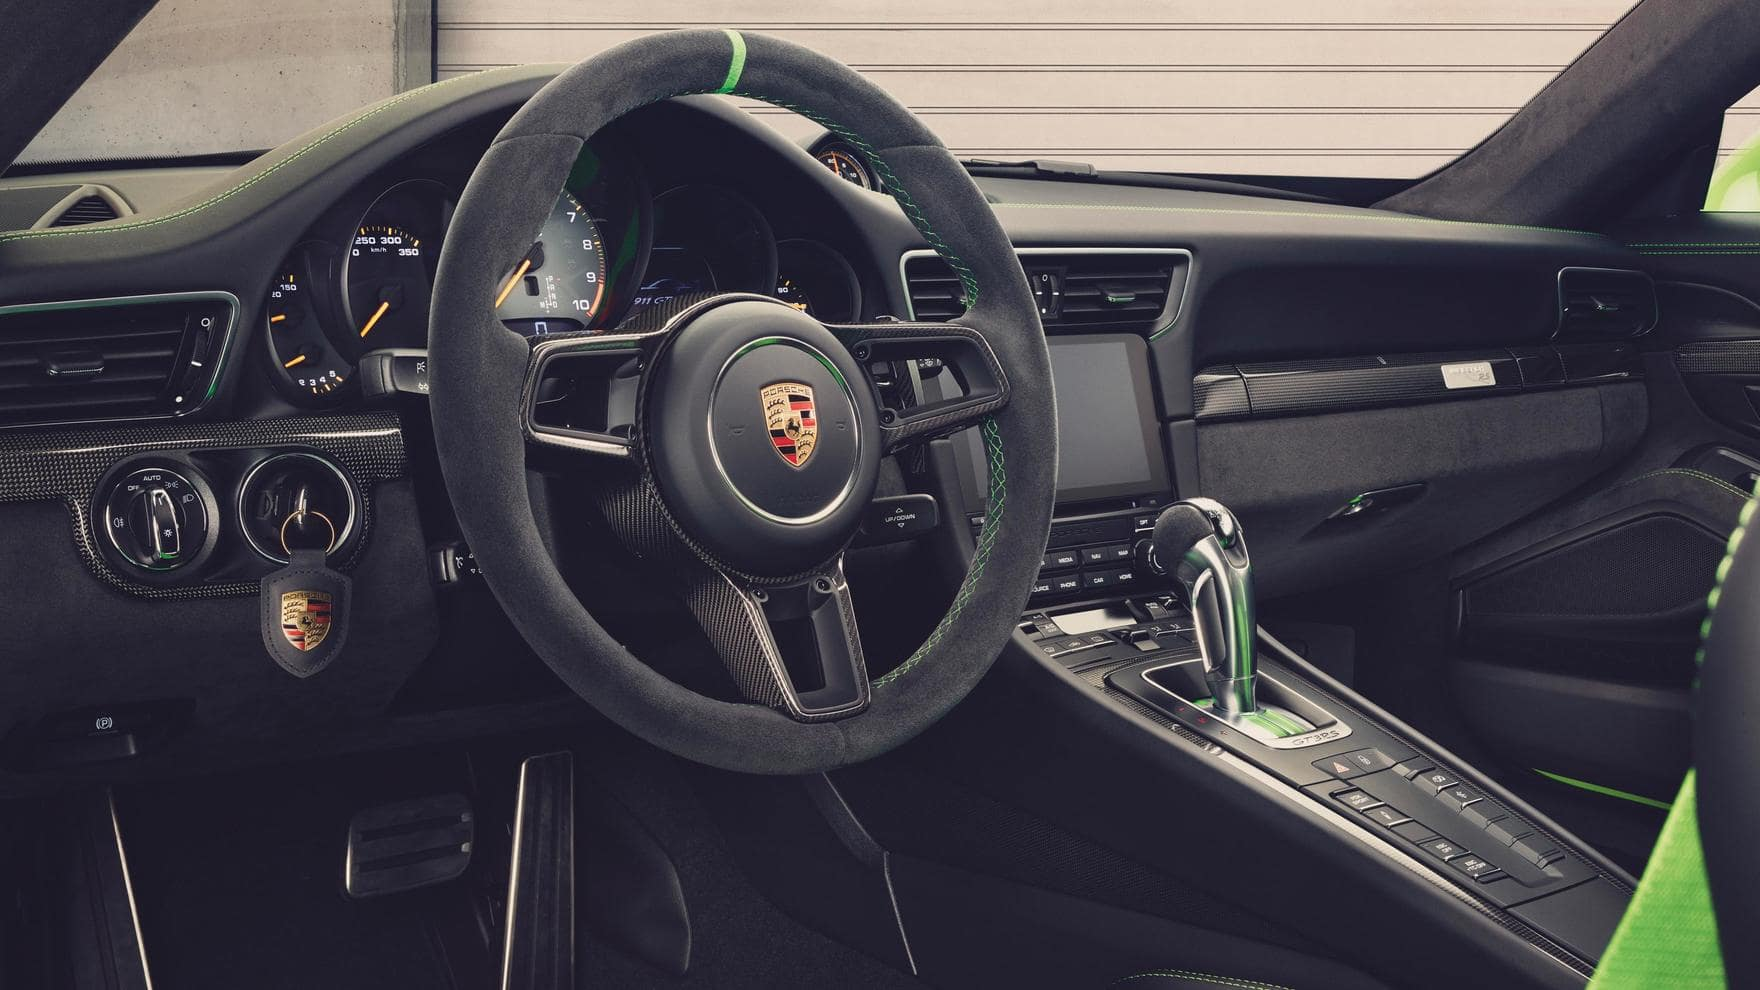 911 GT3 RS steering wheel